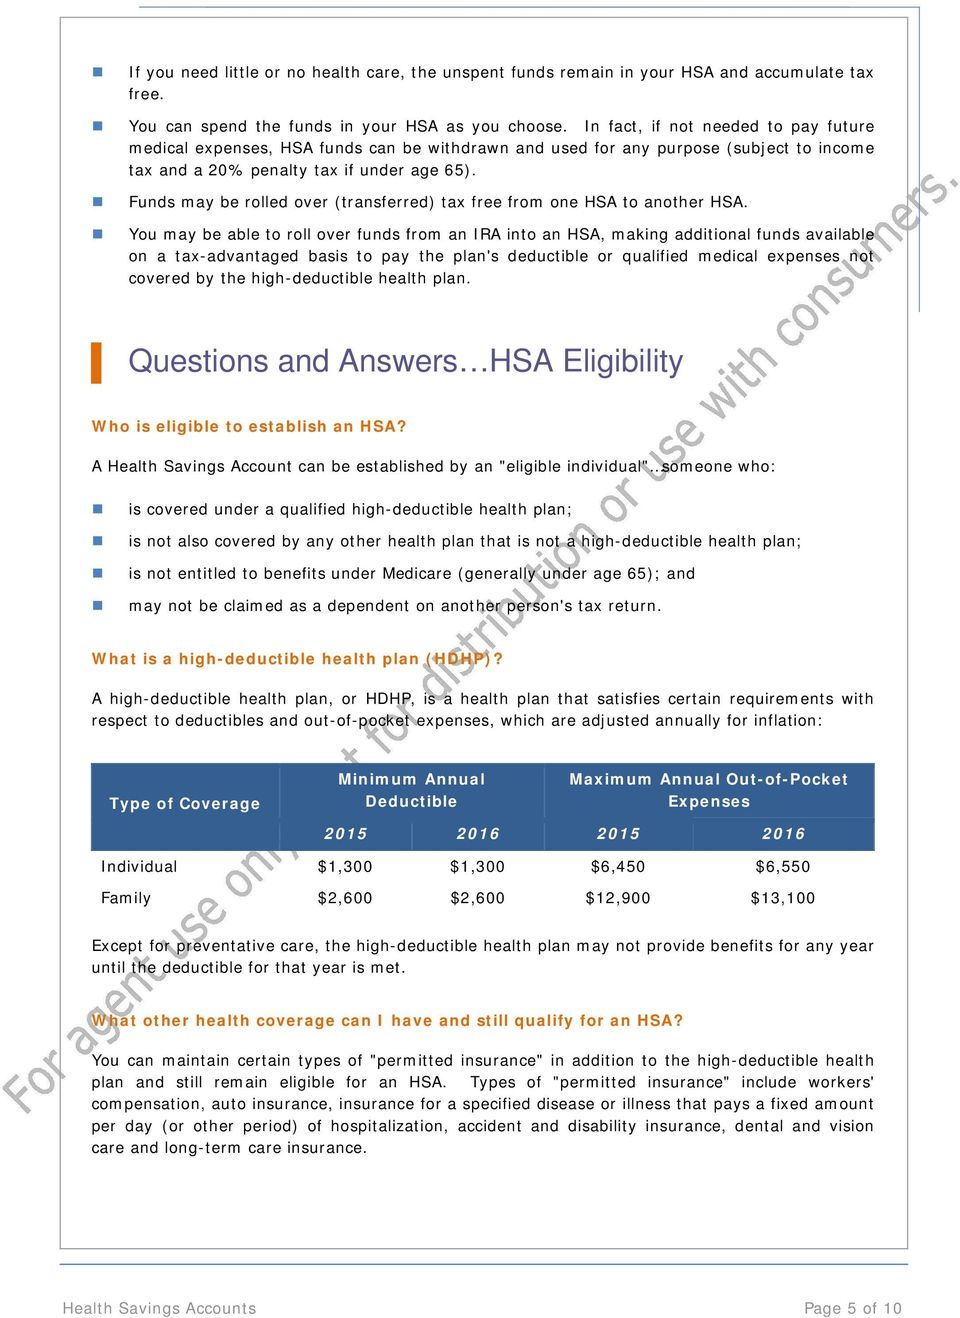 Funds may be rolled over (transferred) tax free from one HSA to another HSA.